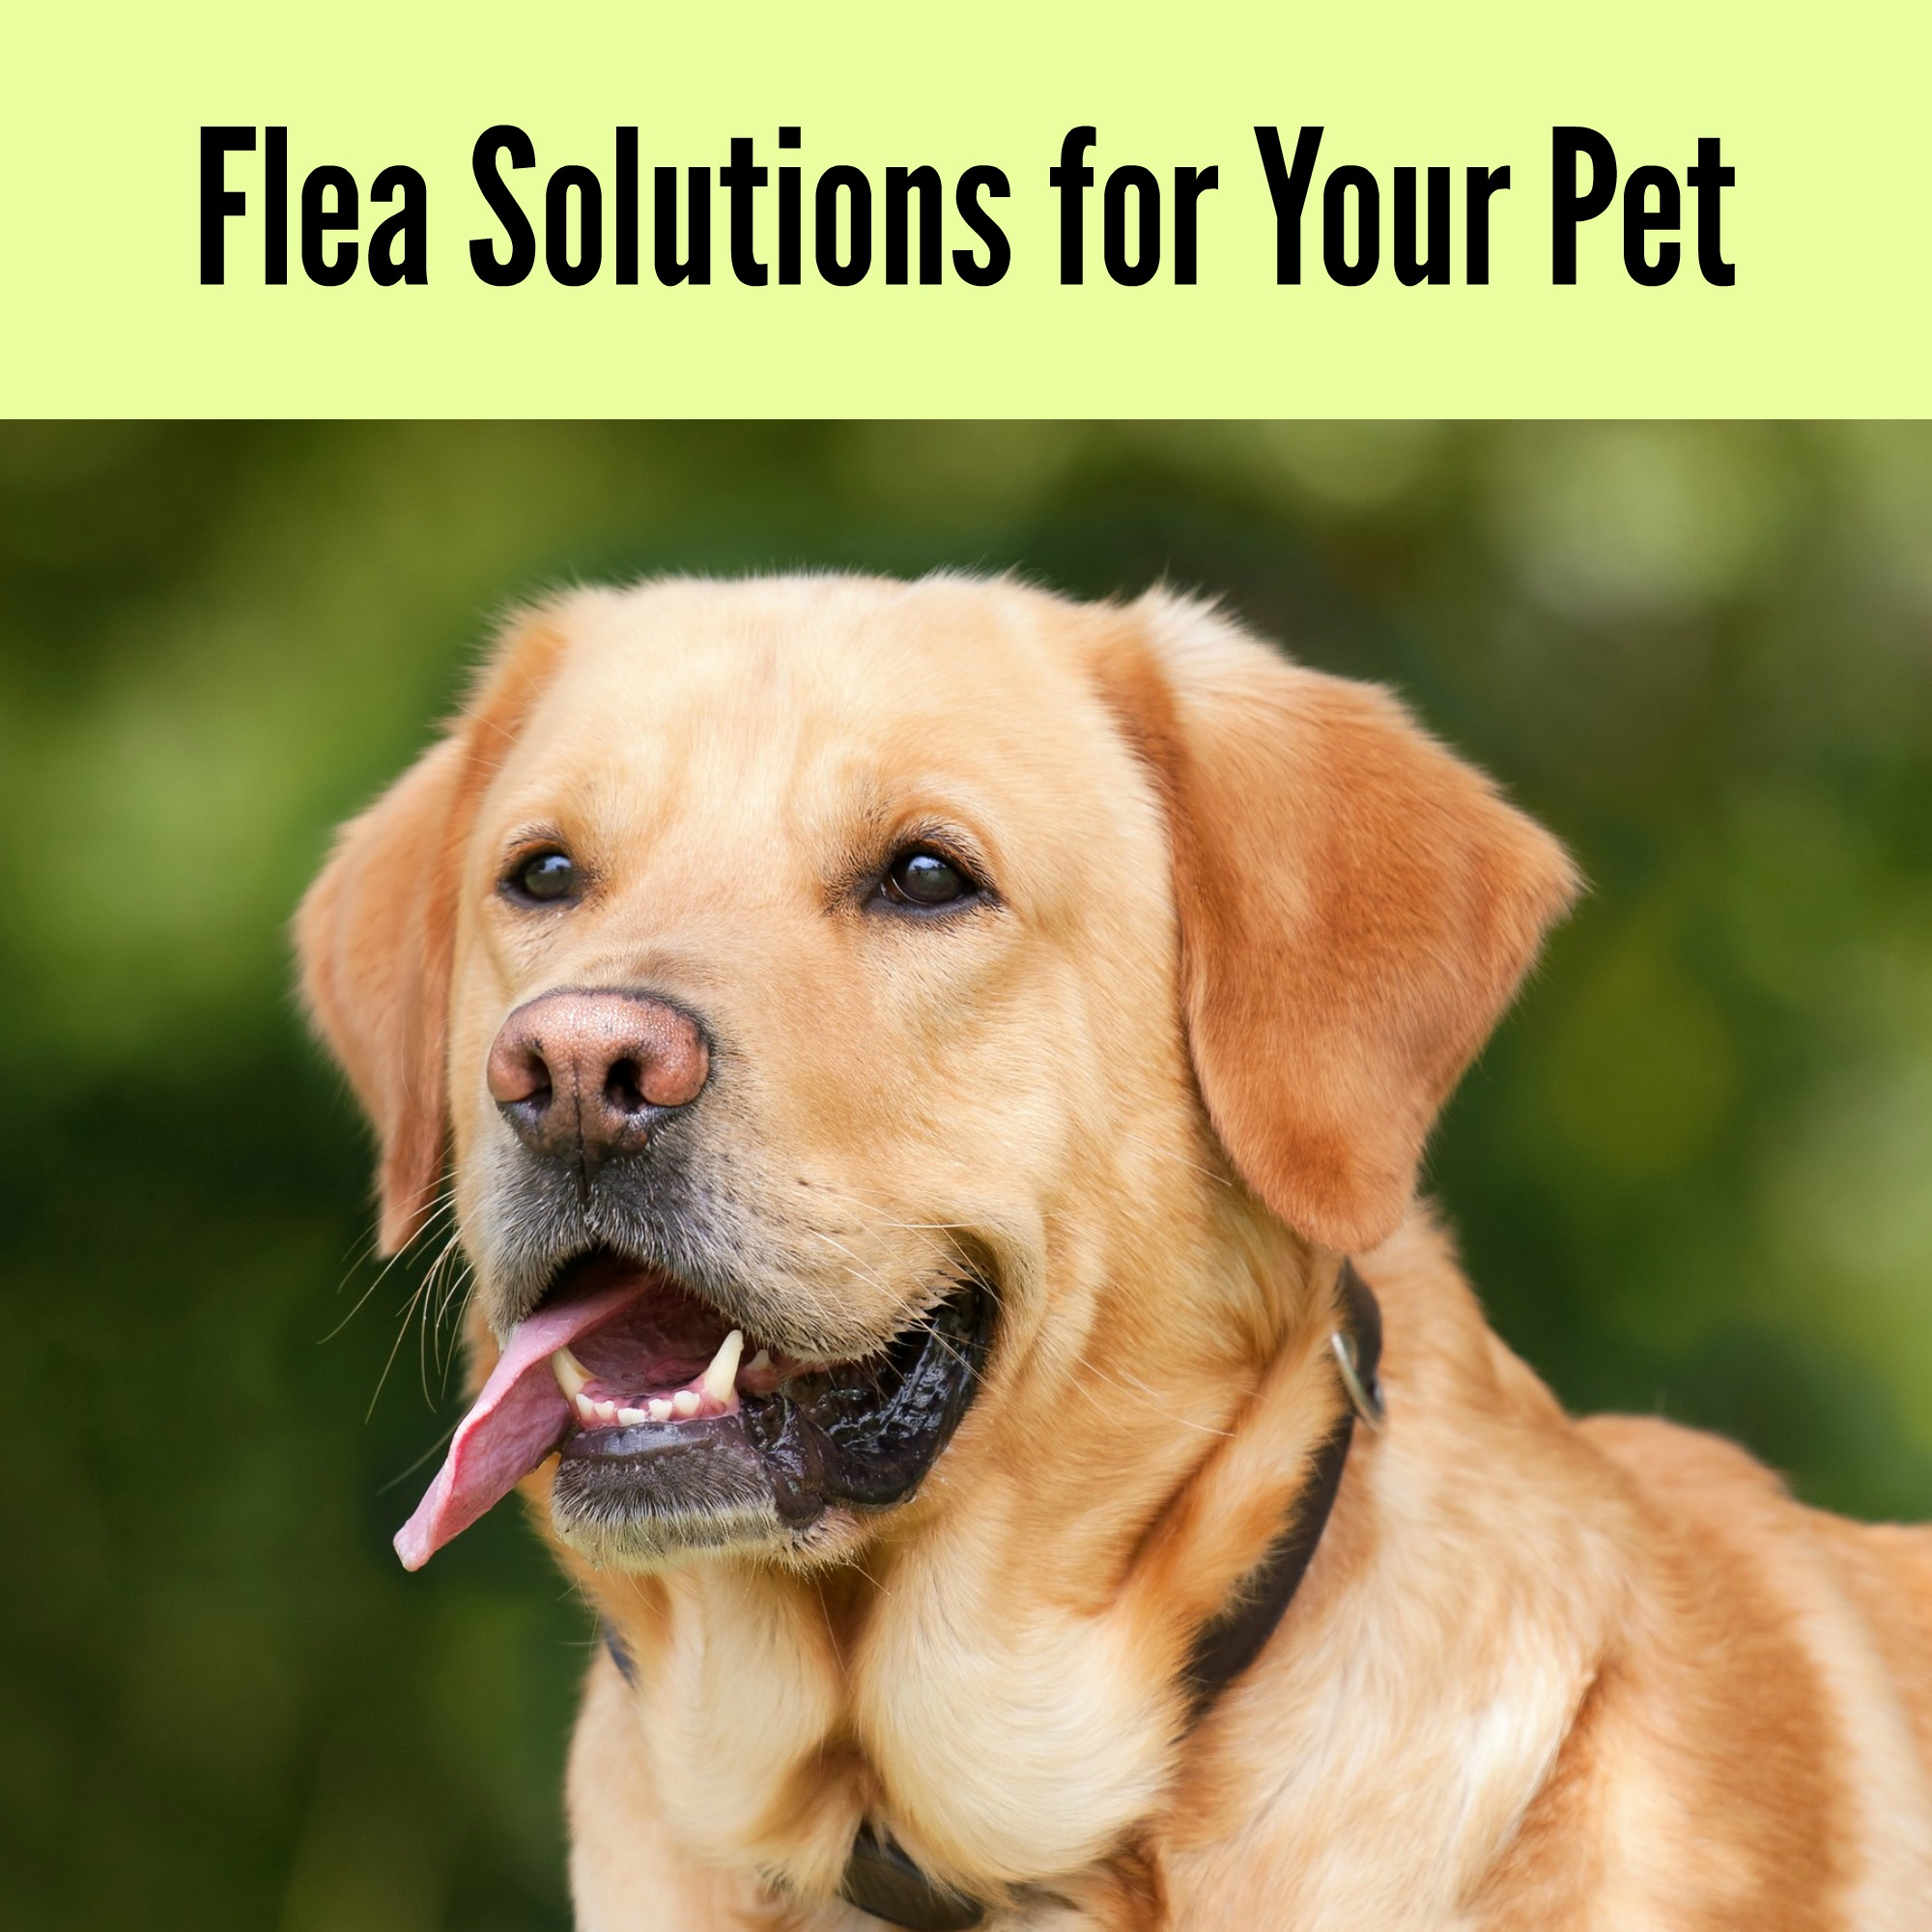 Flea Solutions for Your Pet